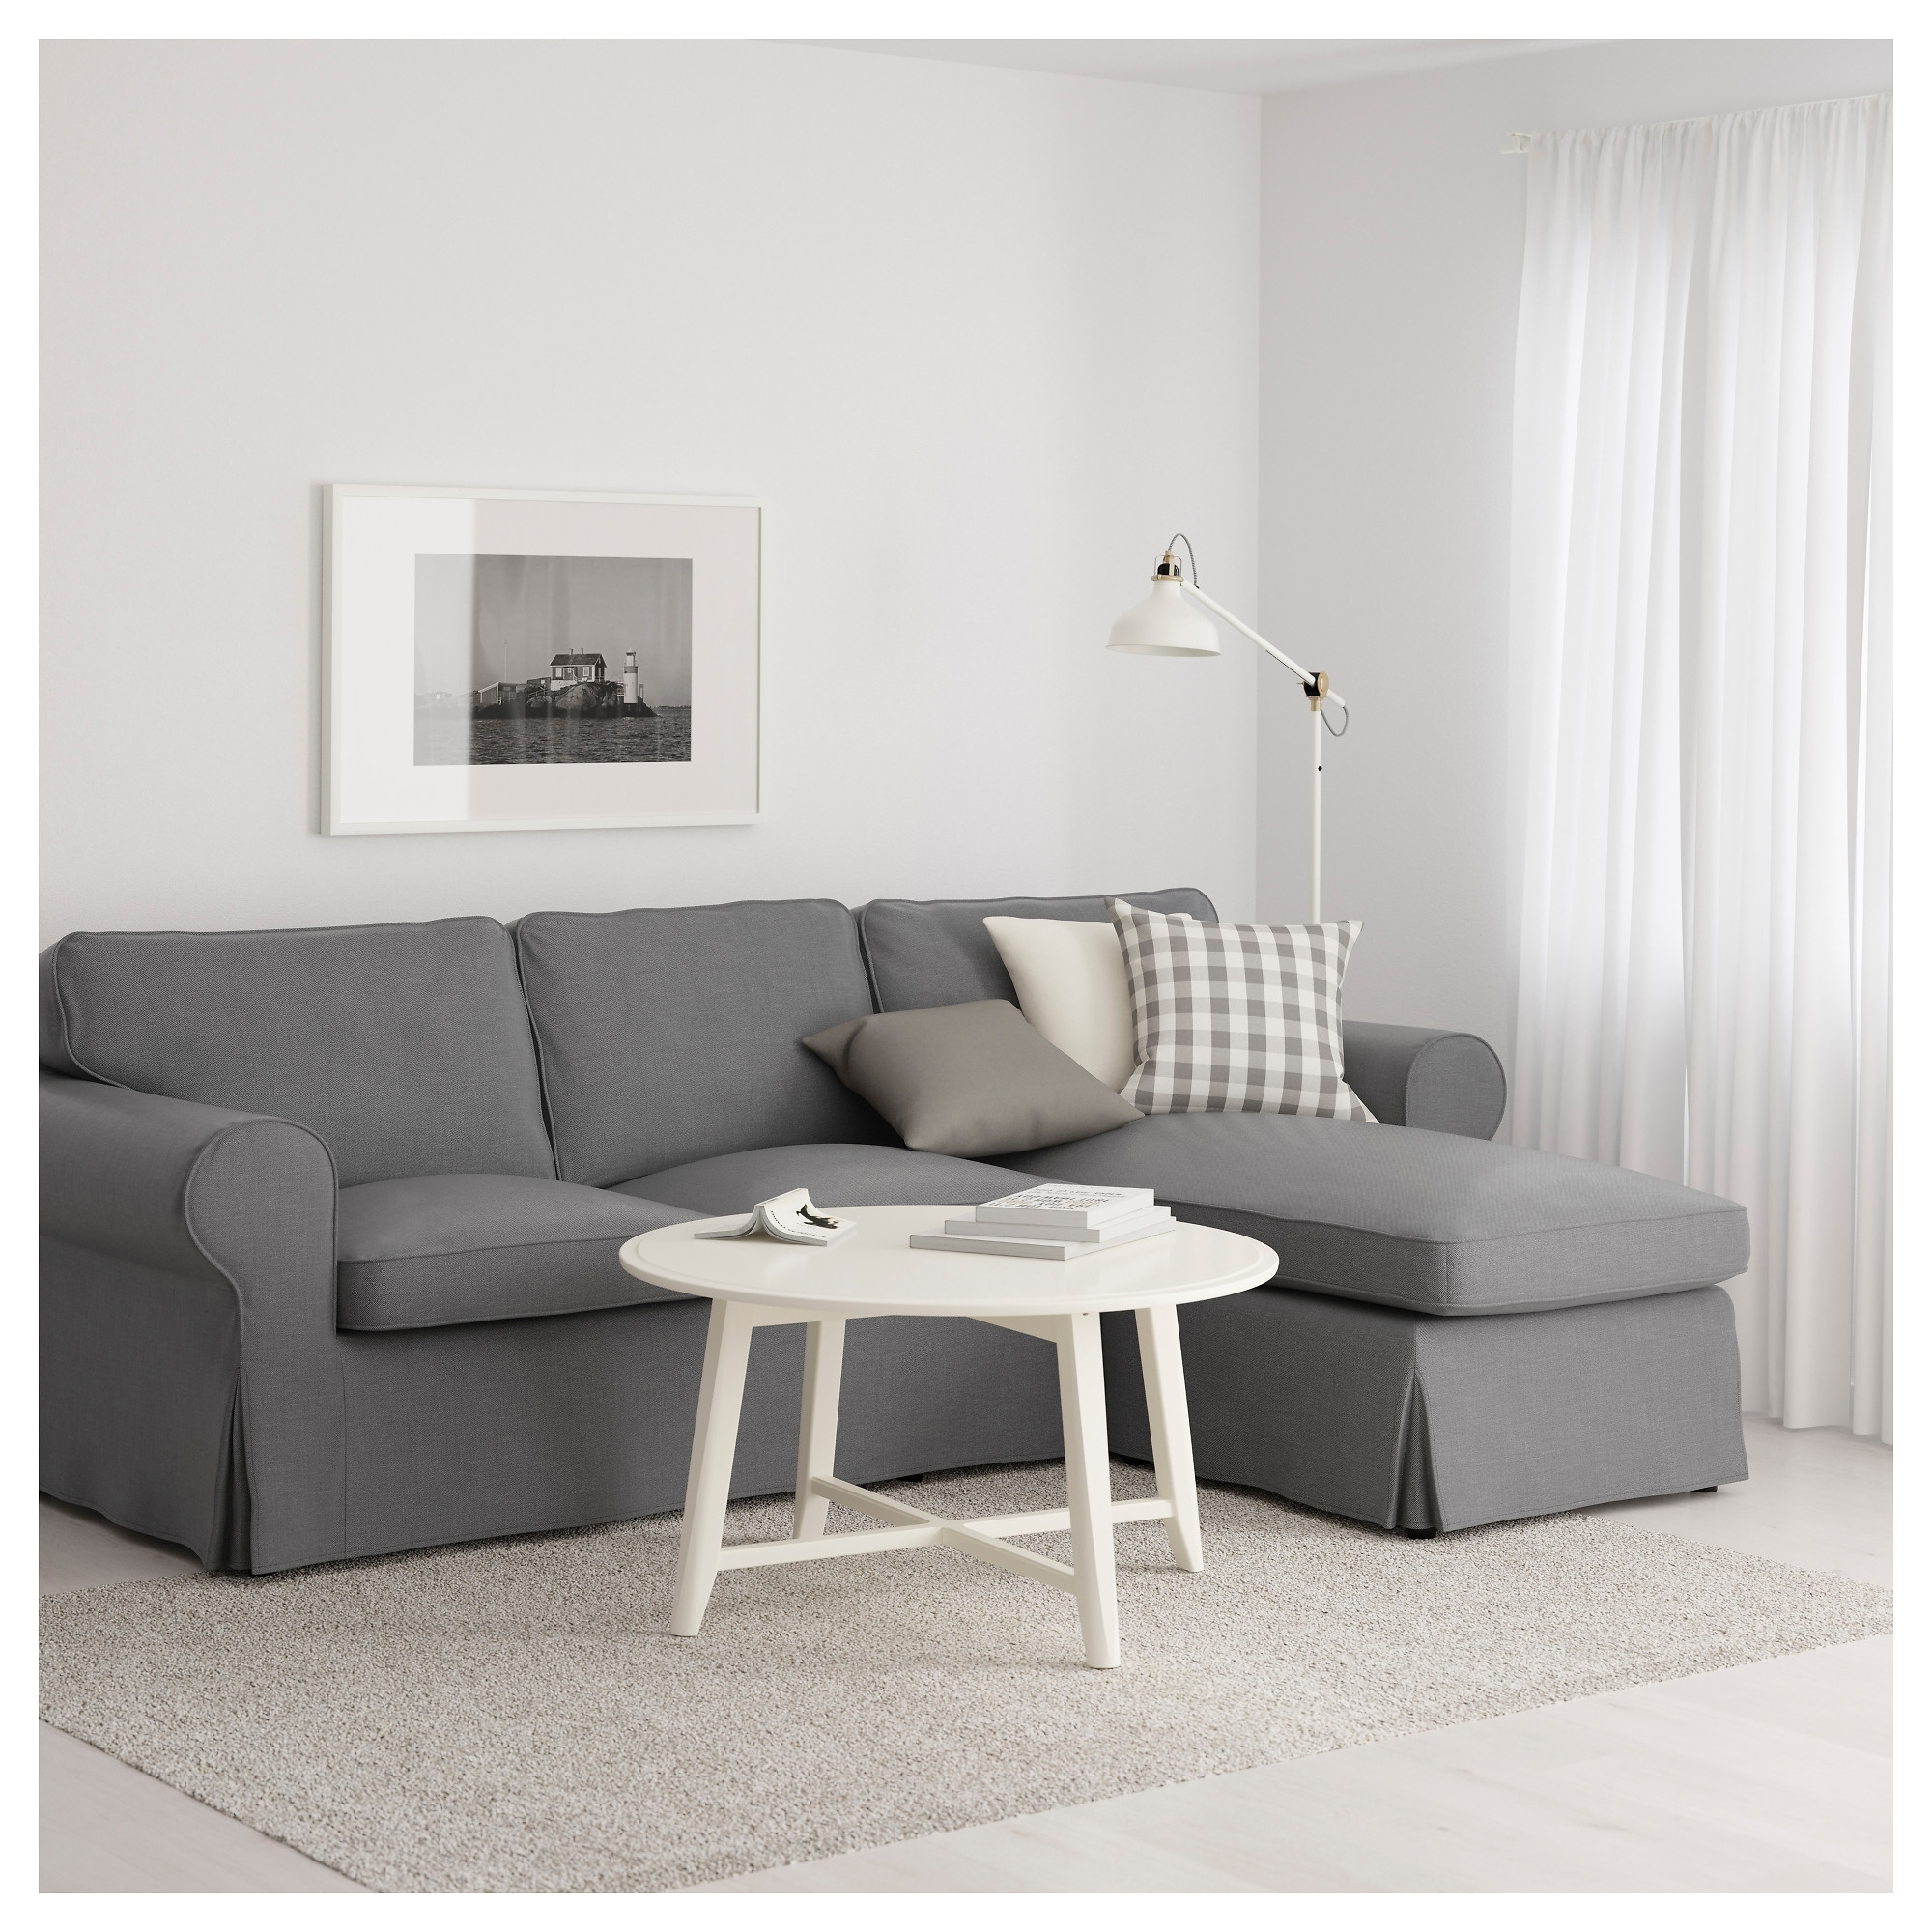 Ikea Ektorp Chaises In Recent Ektorp Sofa – With Chaise/nordvalla Light Blue – Ikea (View 7 of 15)